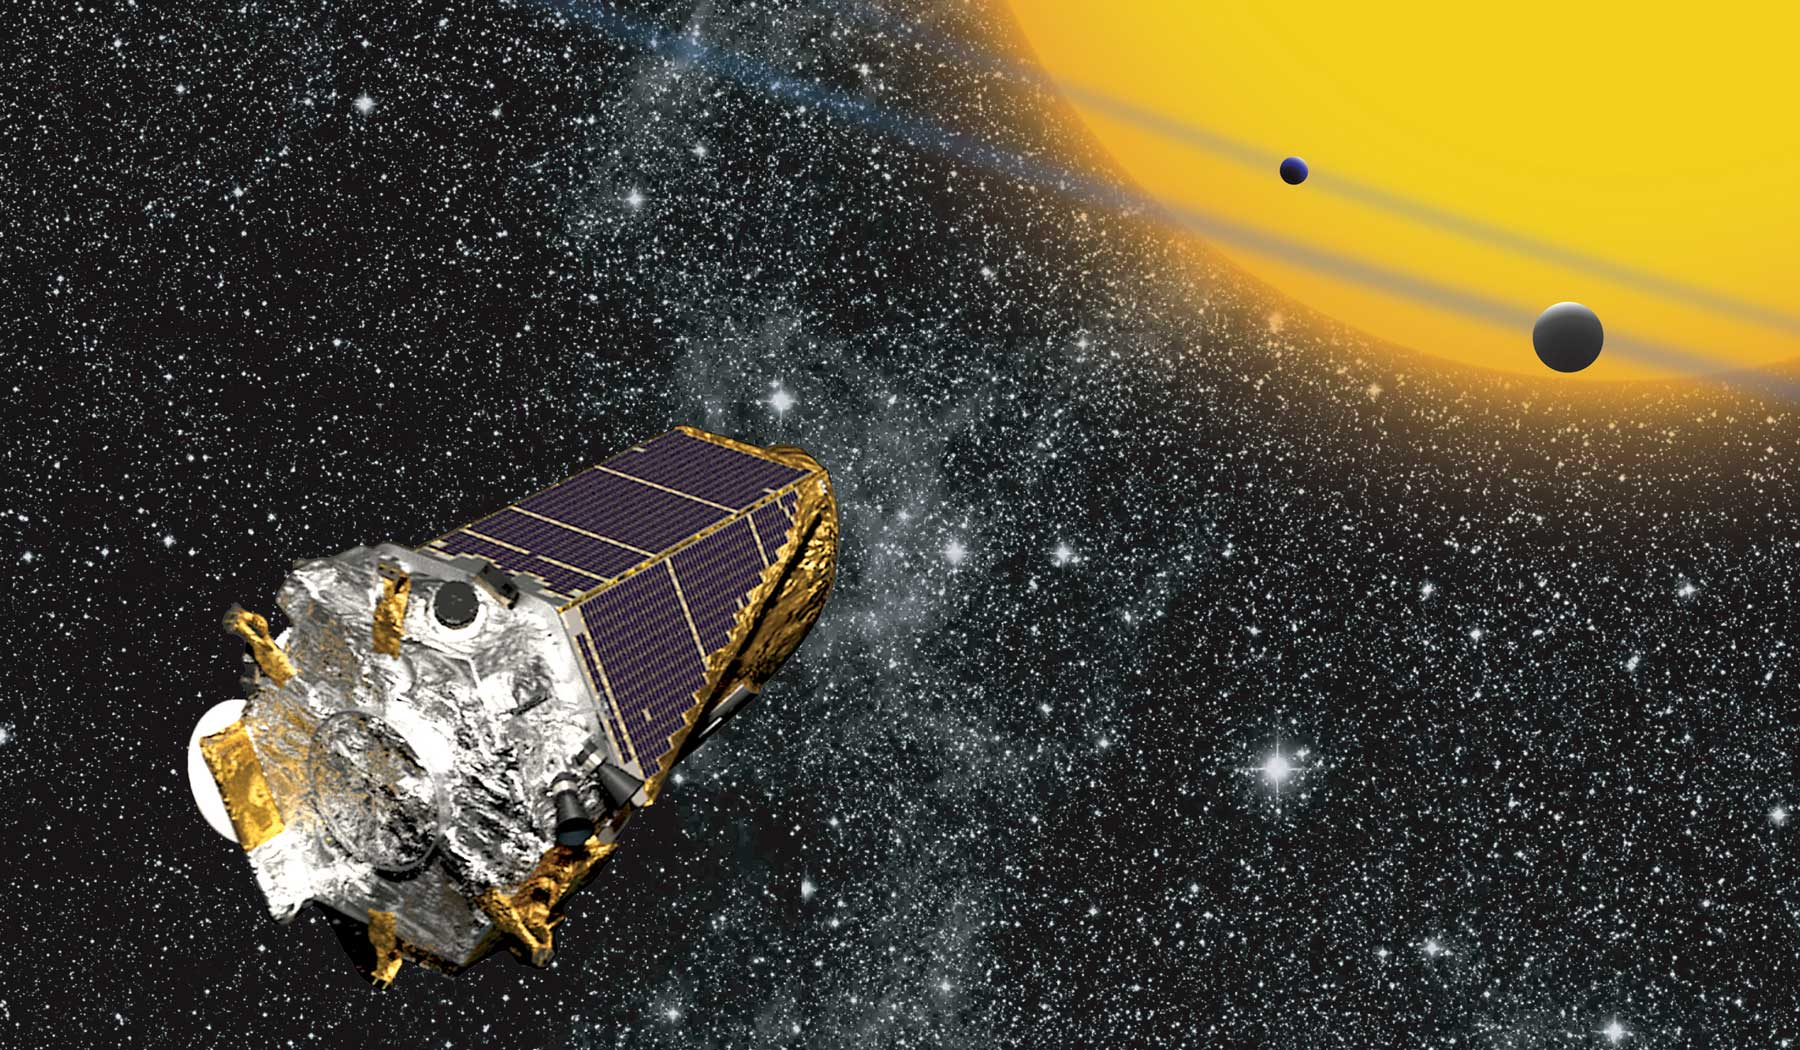 NASA's Kepler spacecraft, after having been recovered from emergency mode, will now resume scientific duties.